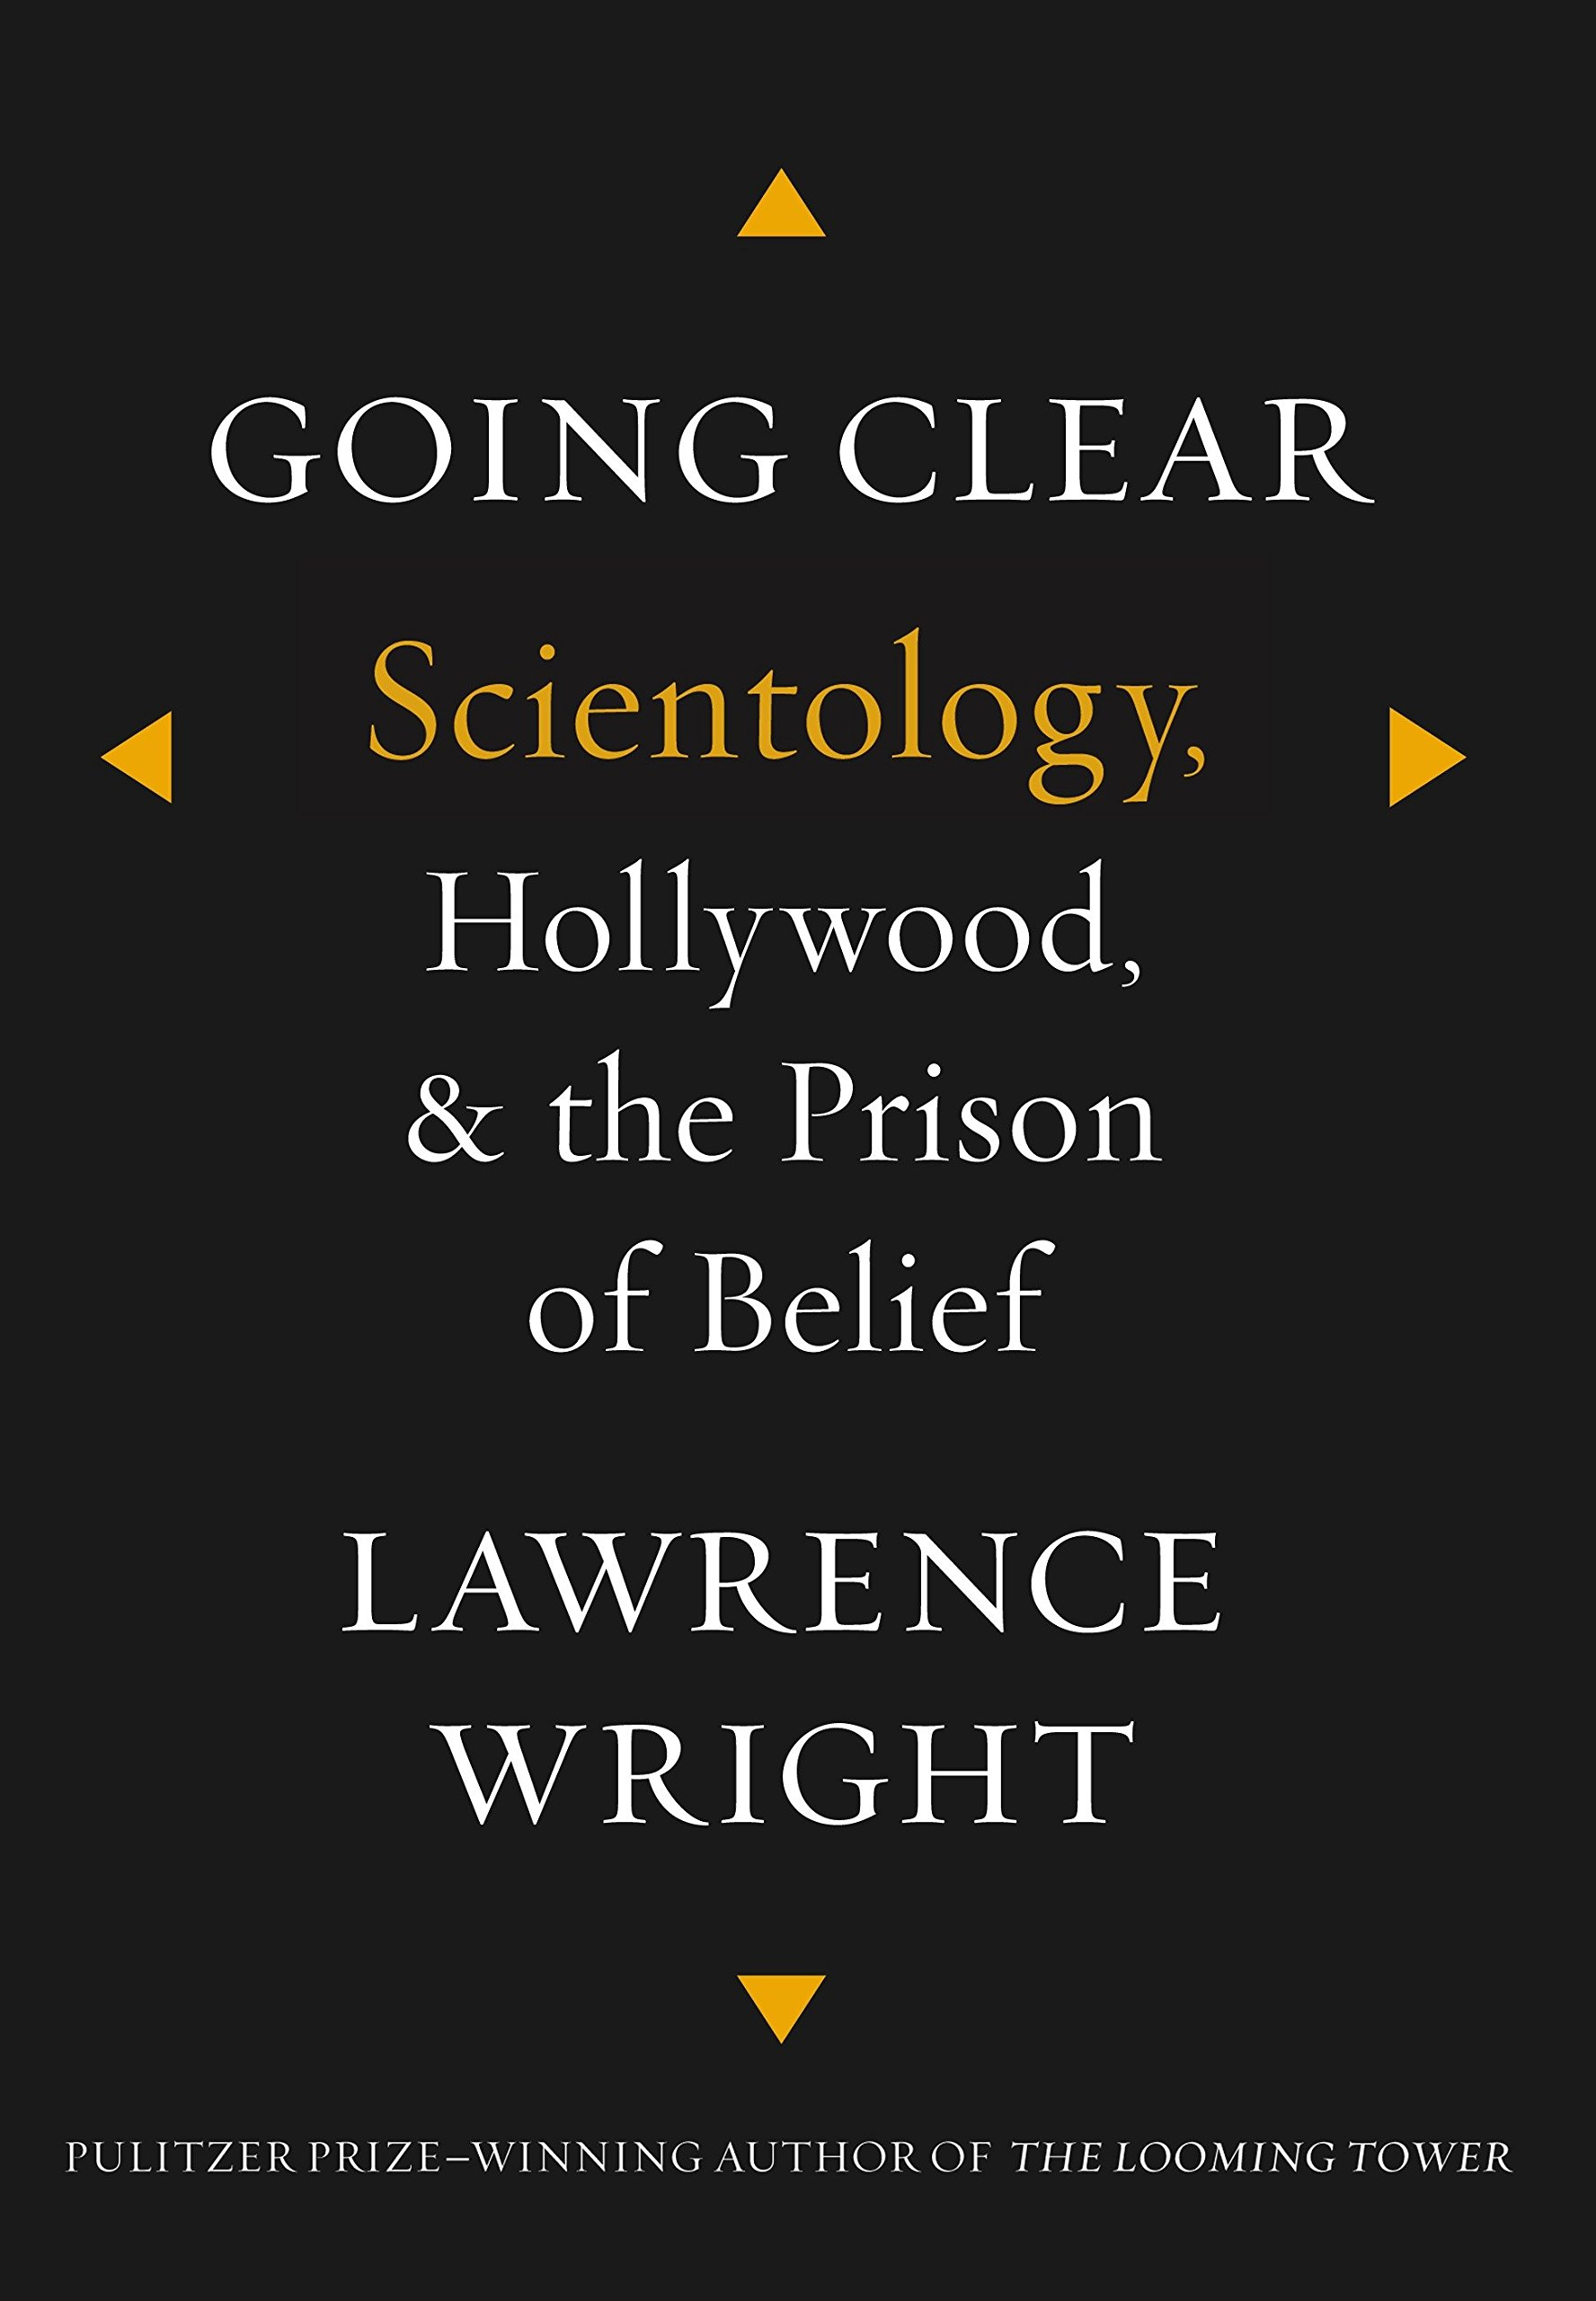 Going Clear: Scientology, Hollywood, and the Prison of Belief book cover